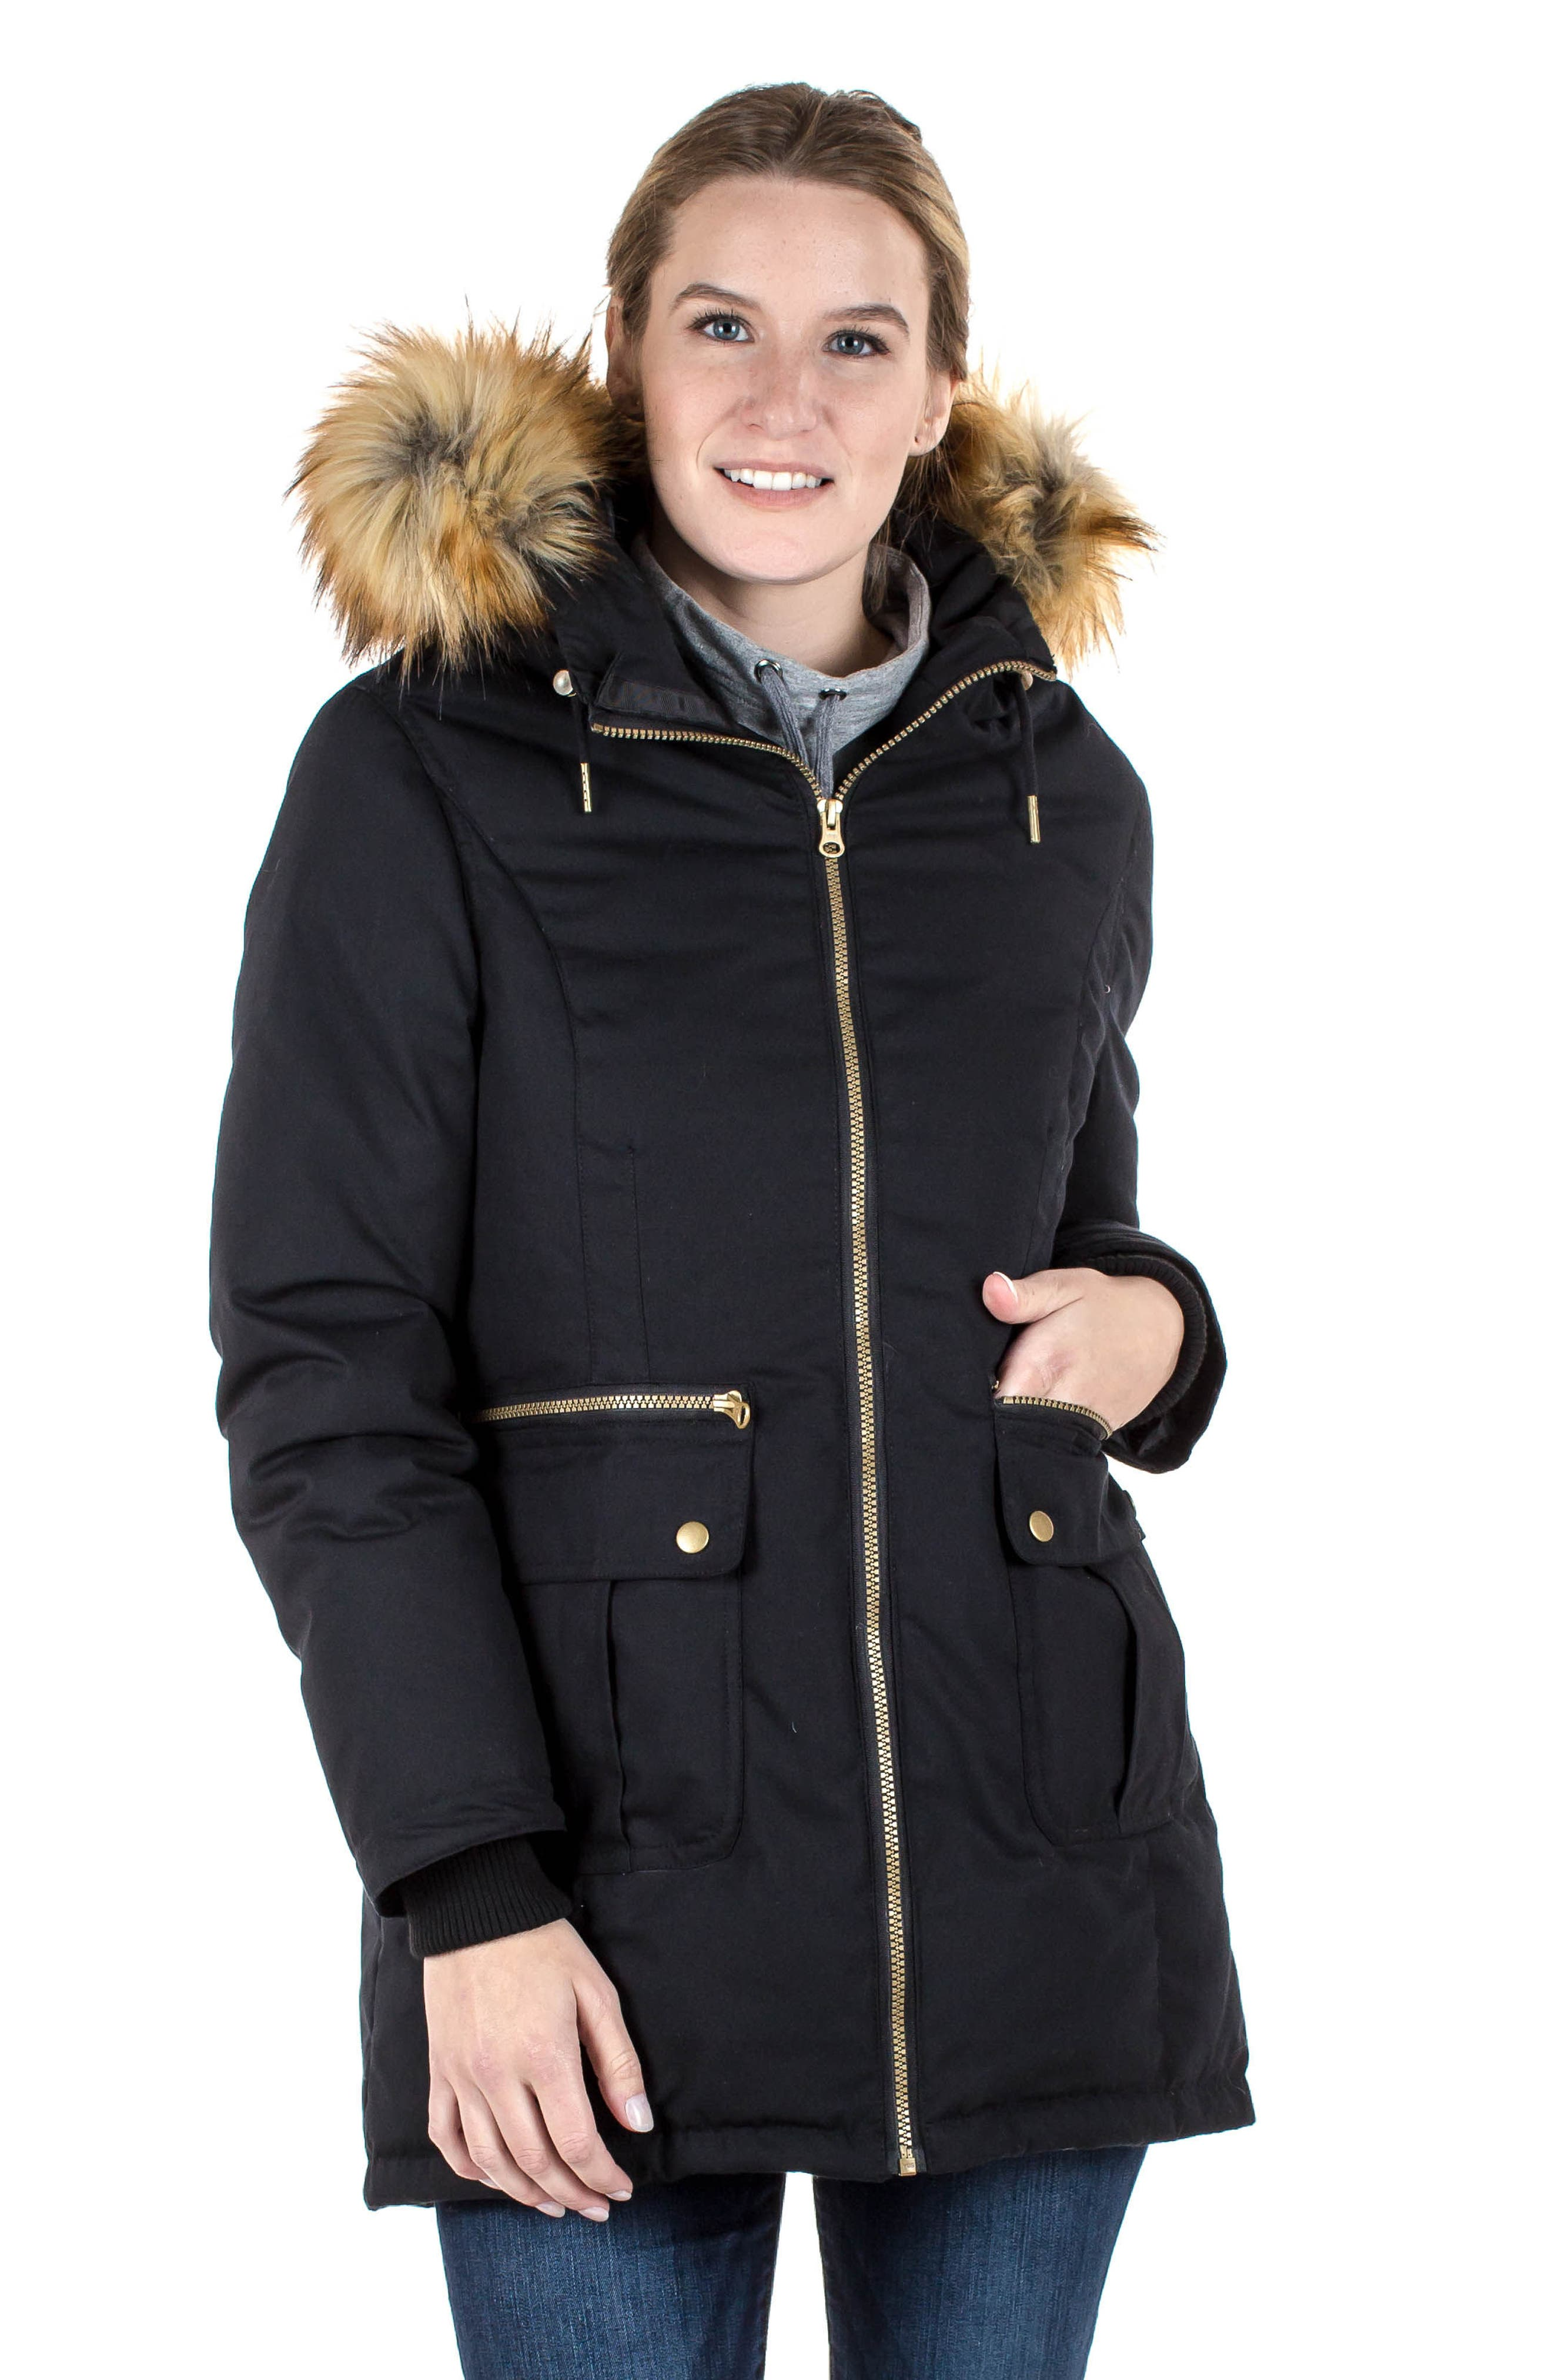 Convertible Down 3-in-1 Maternity Jacket,                             Alternate thumbnail 8, color,                             BLACK